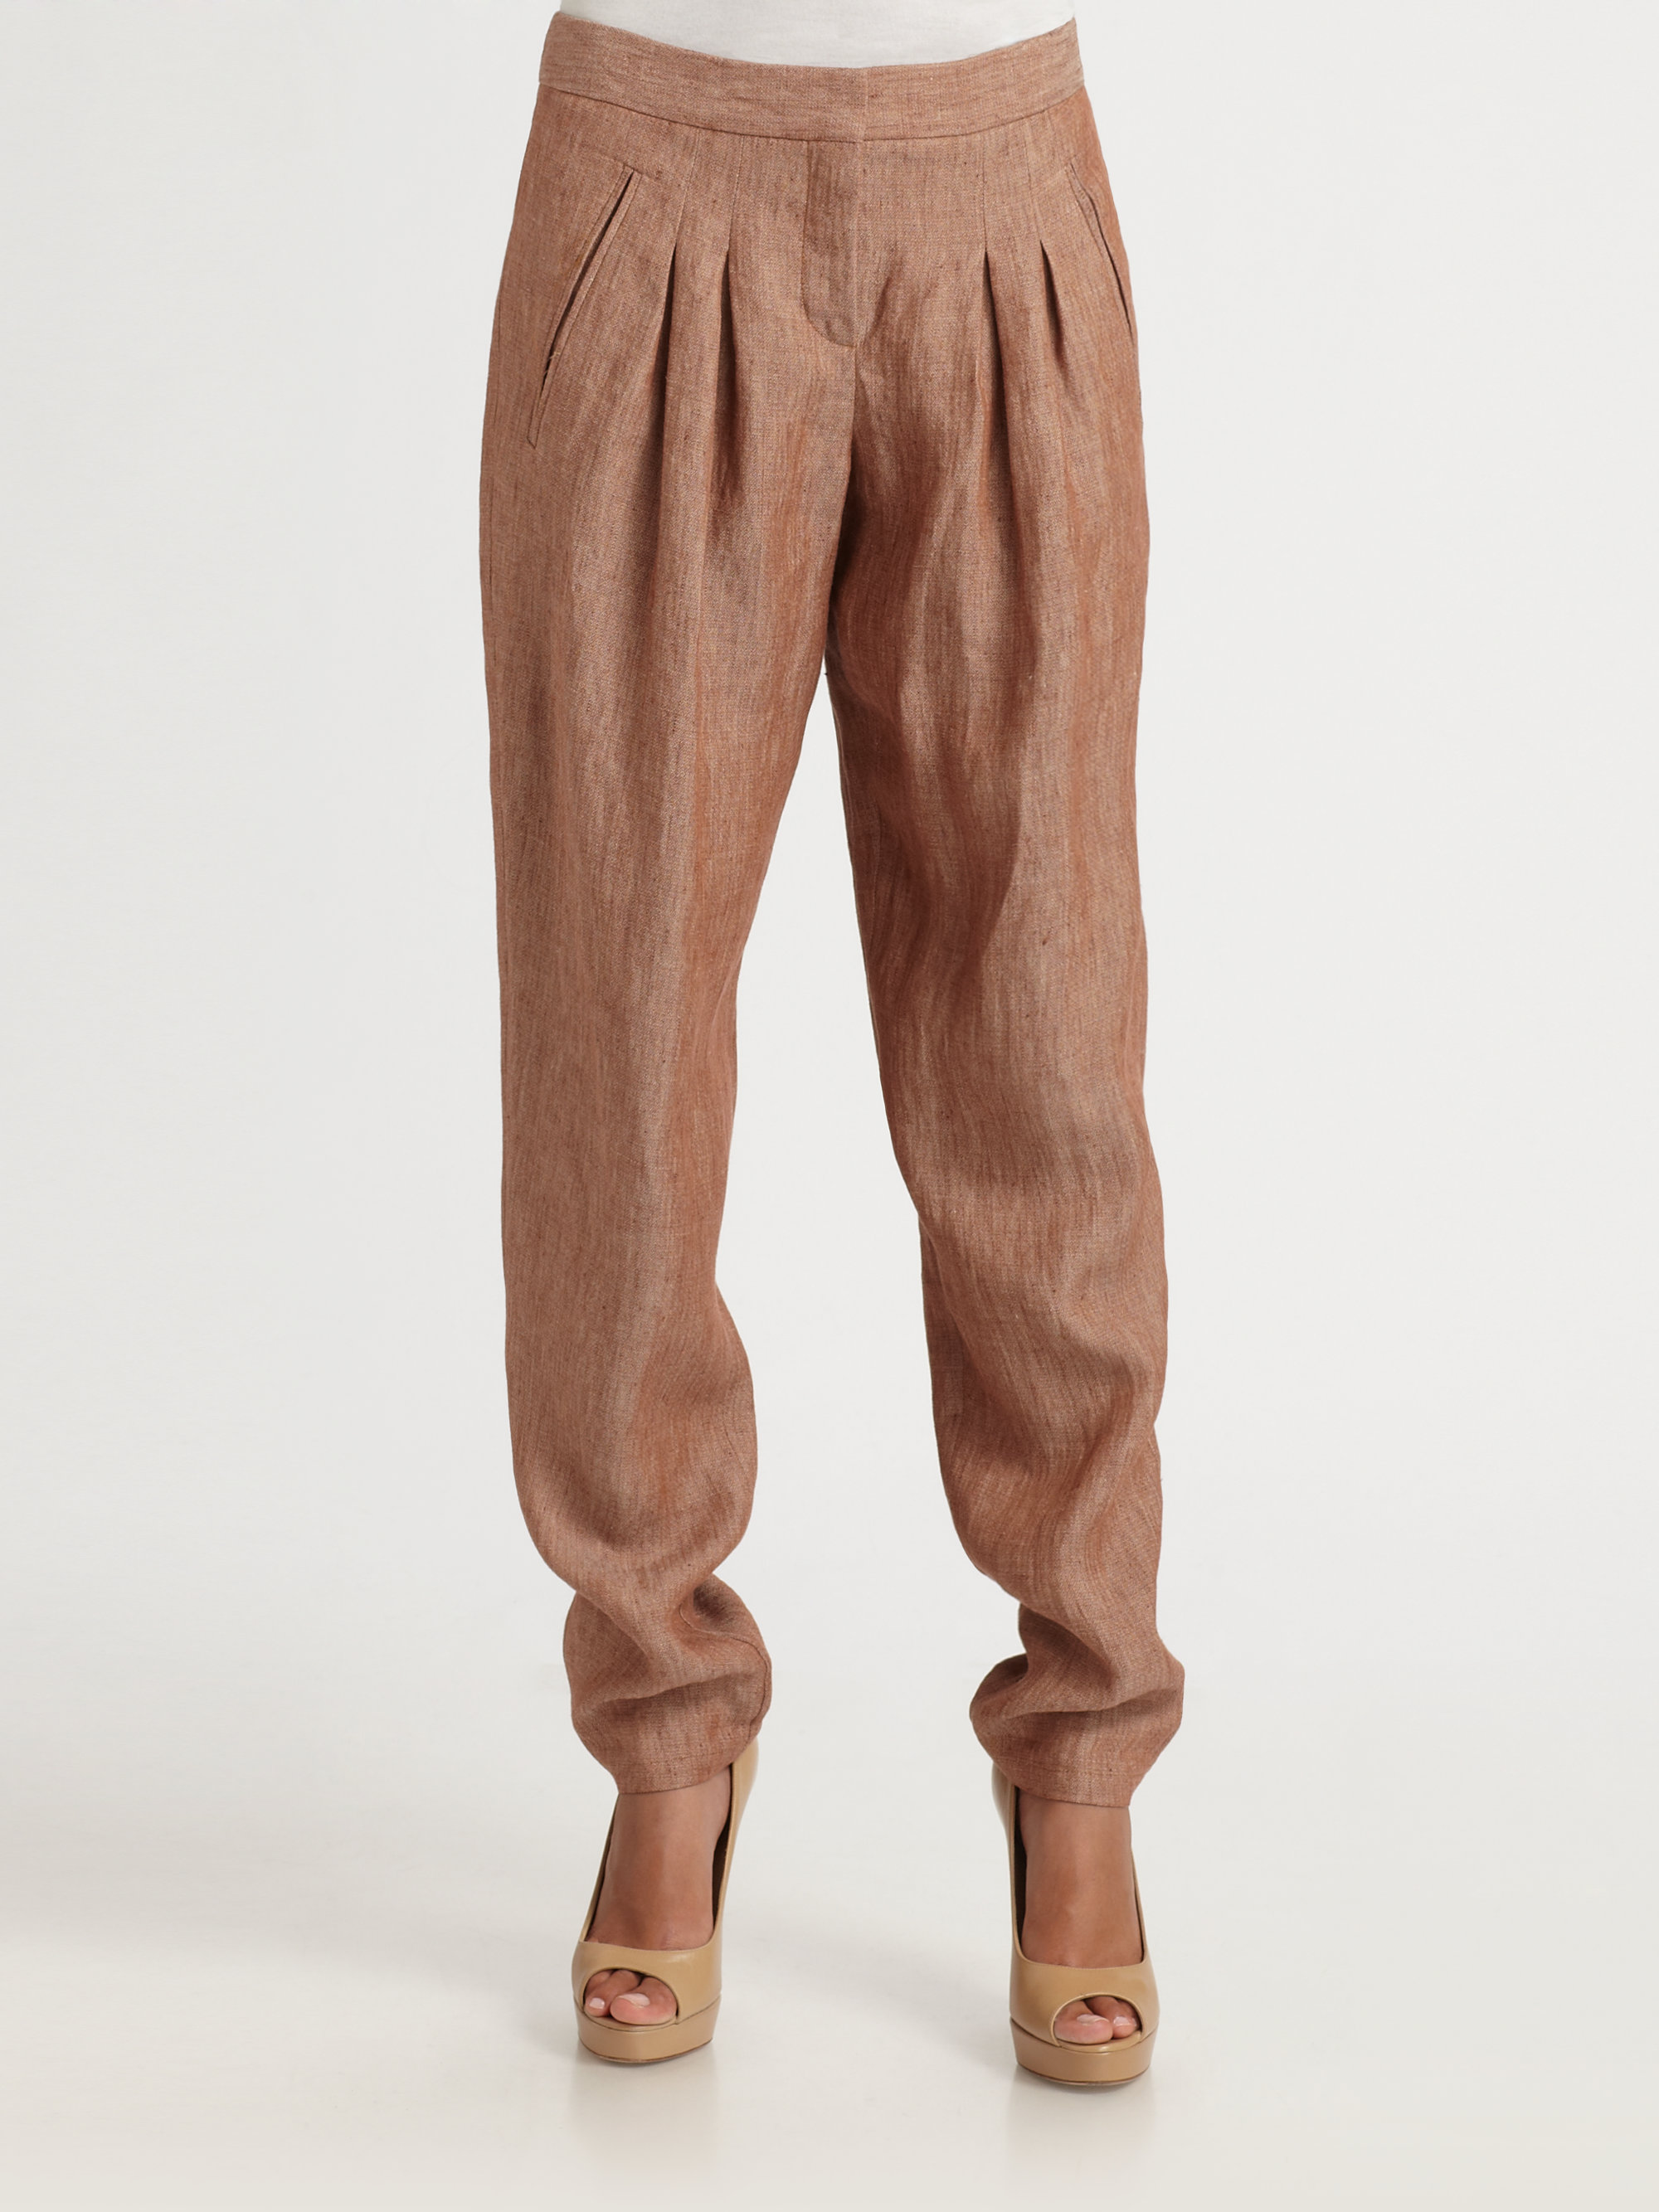 Theory Dalisha Pleated Linen Pants in Brown | Lyst